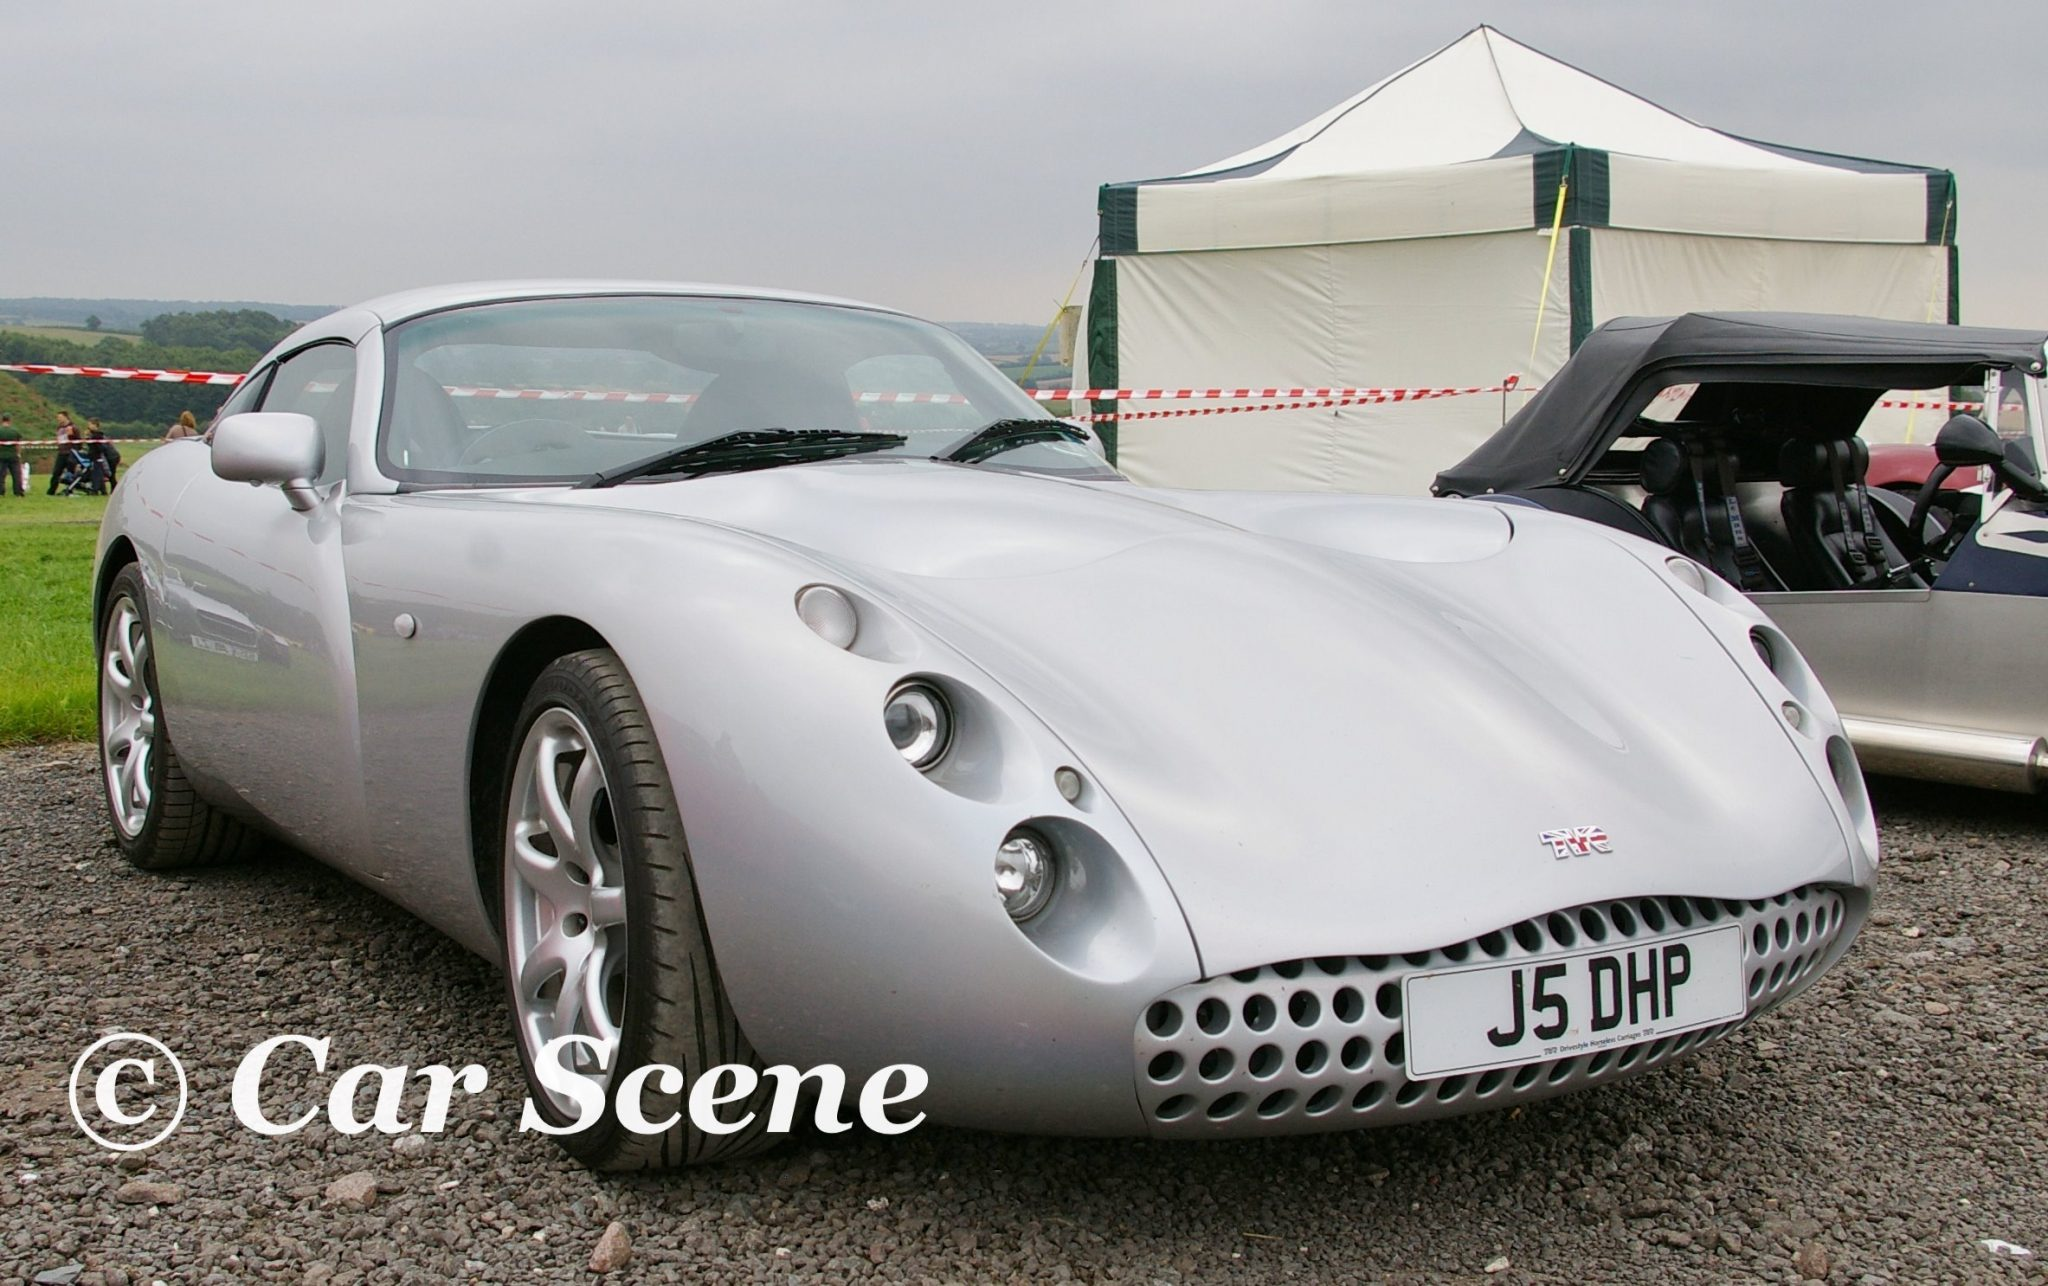 TVR Tuscan front three quarters view